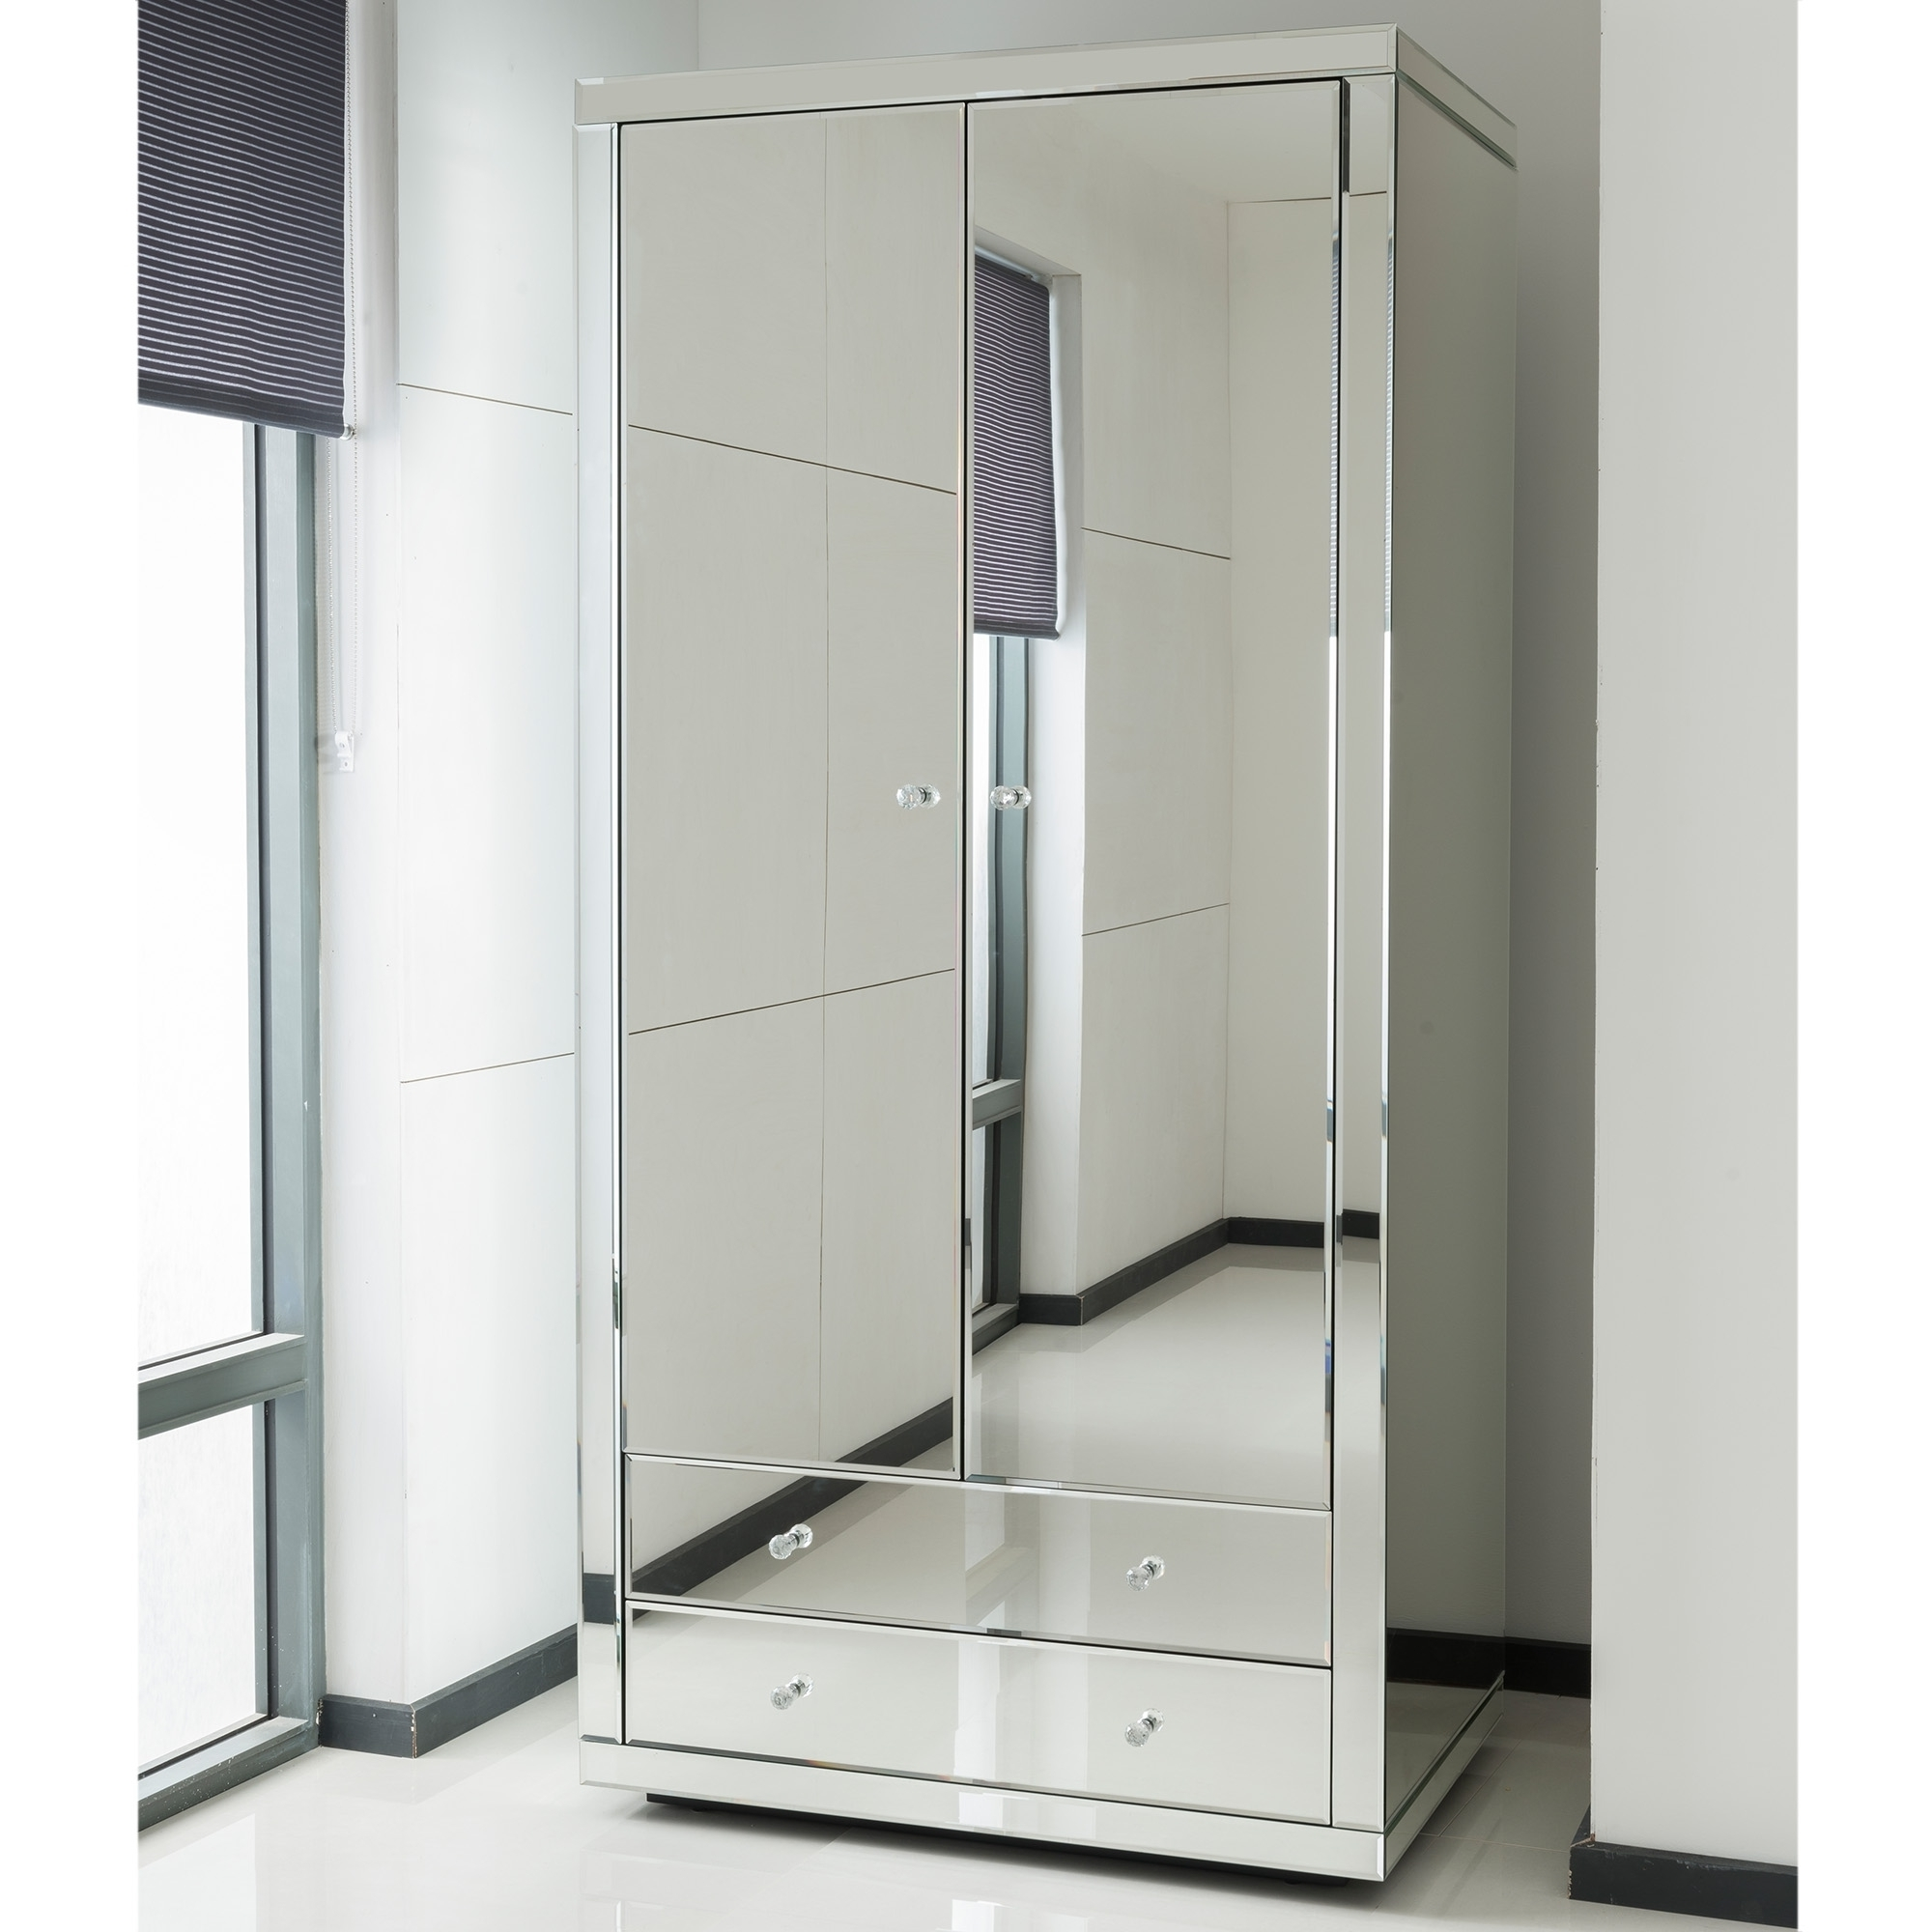 Fashionable Double Mirrored Wardrobes With Regard To 3 Door Mirrored Wardrobe – Mirrored Wardrobe Designs For Your (View 2 of 15)